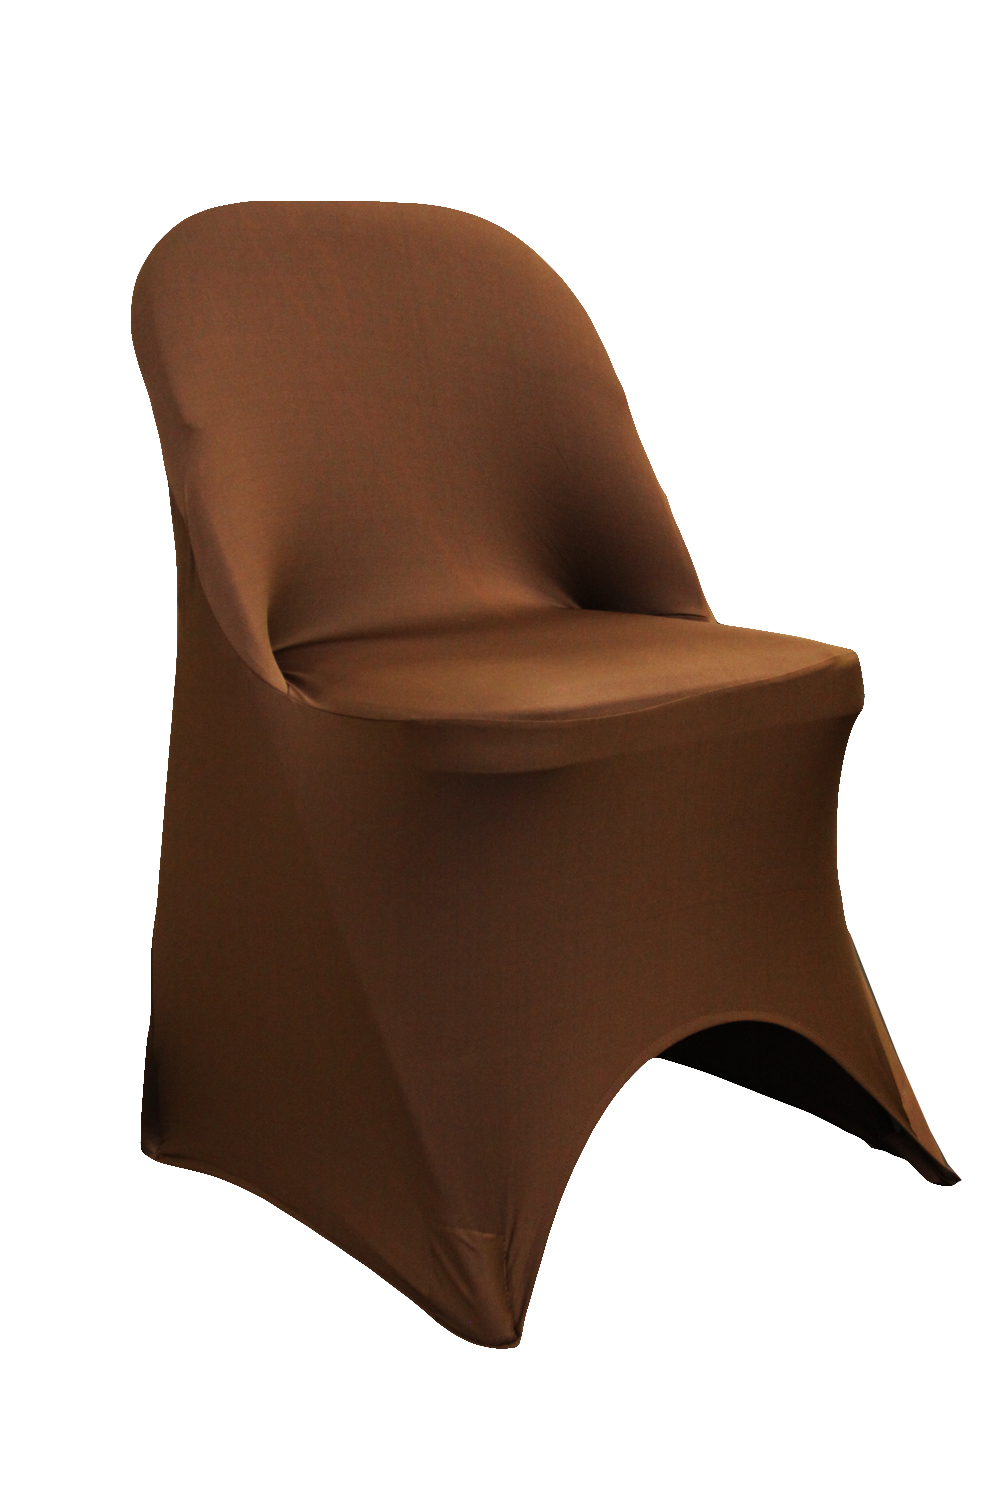 New chair covers for folding chairs folding spandex chair cover - chocolate brown dupdgcn